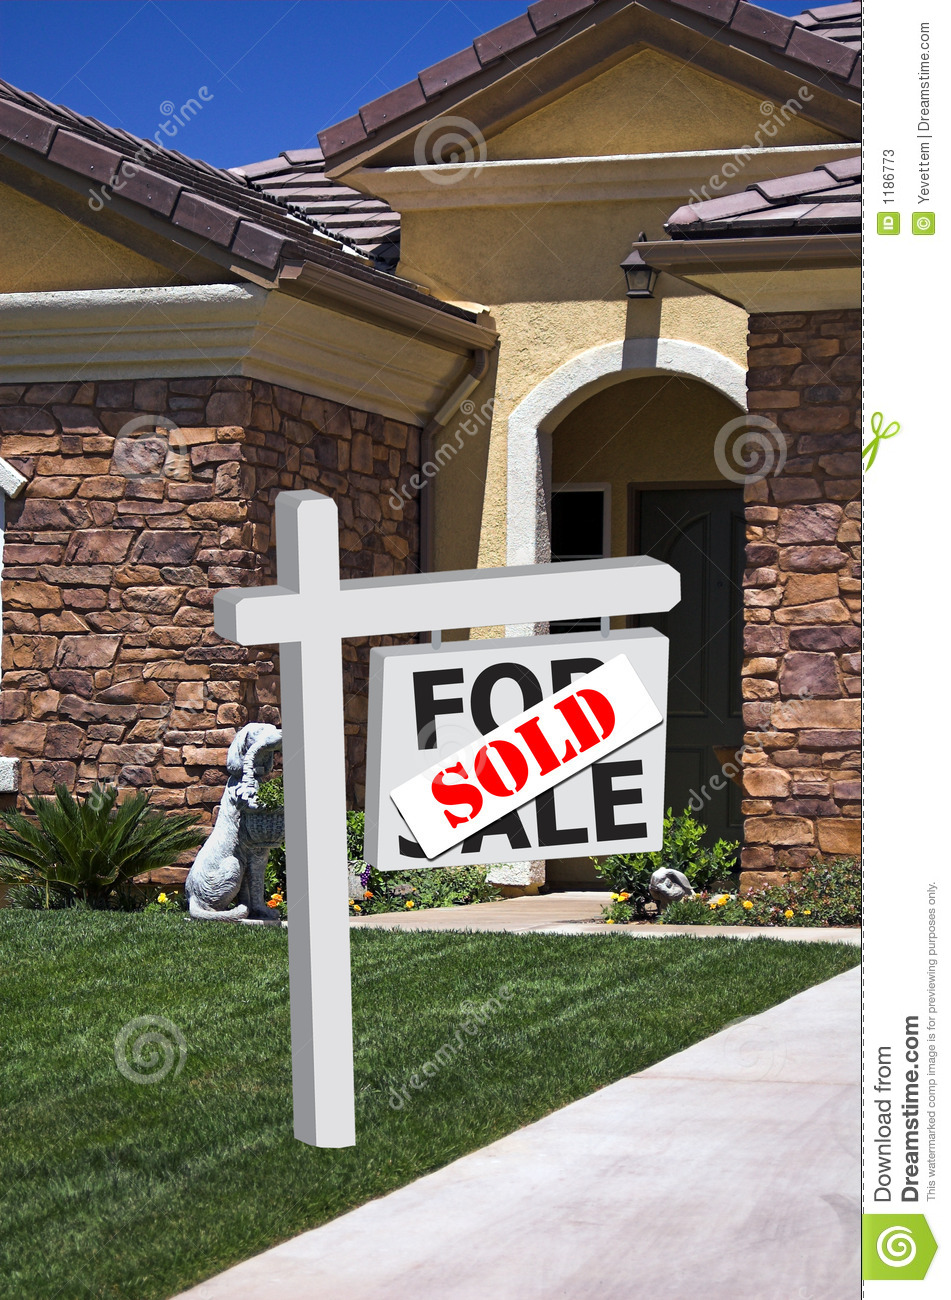 New home sold sign stock photos image 1186773 for New home sign